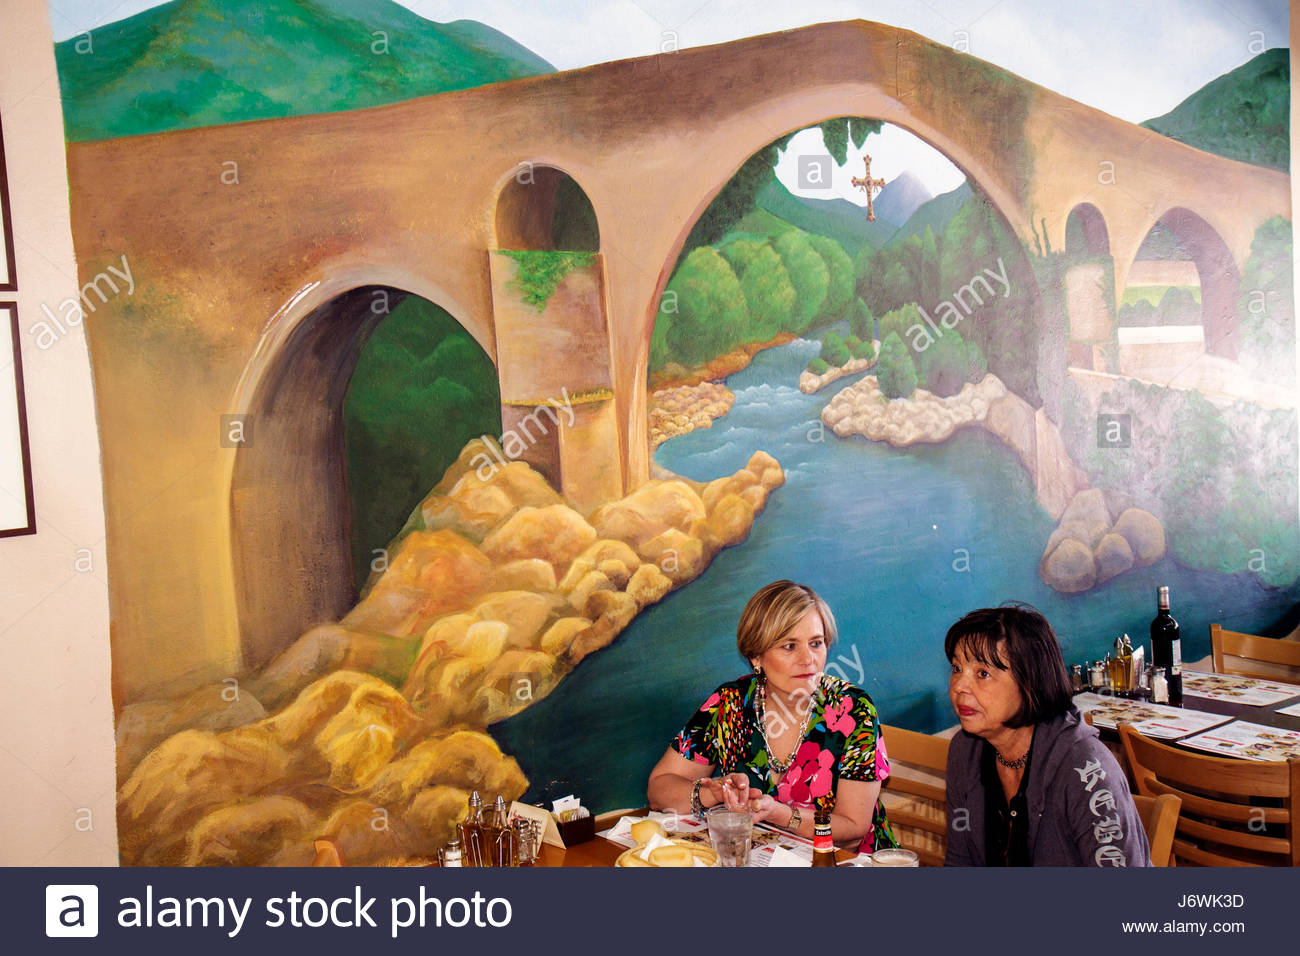 Mural on a restaurant stock photos mural on a restaurant for Mural restaurant